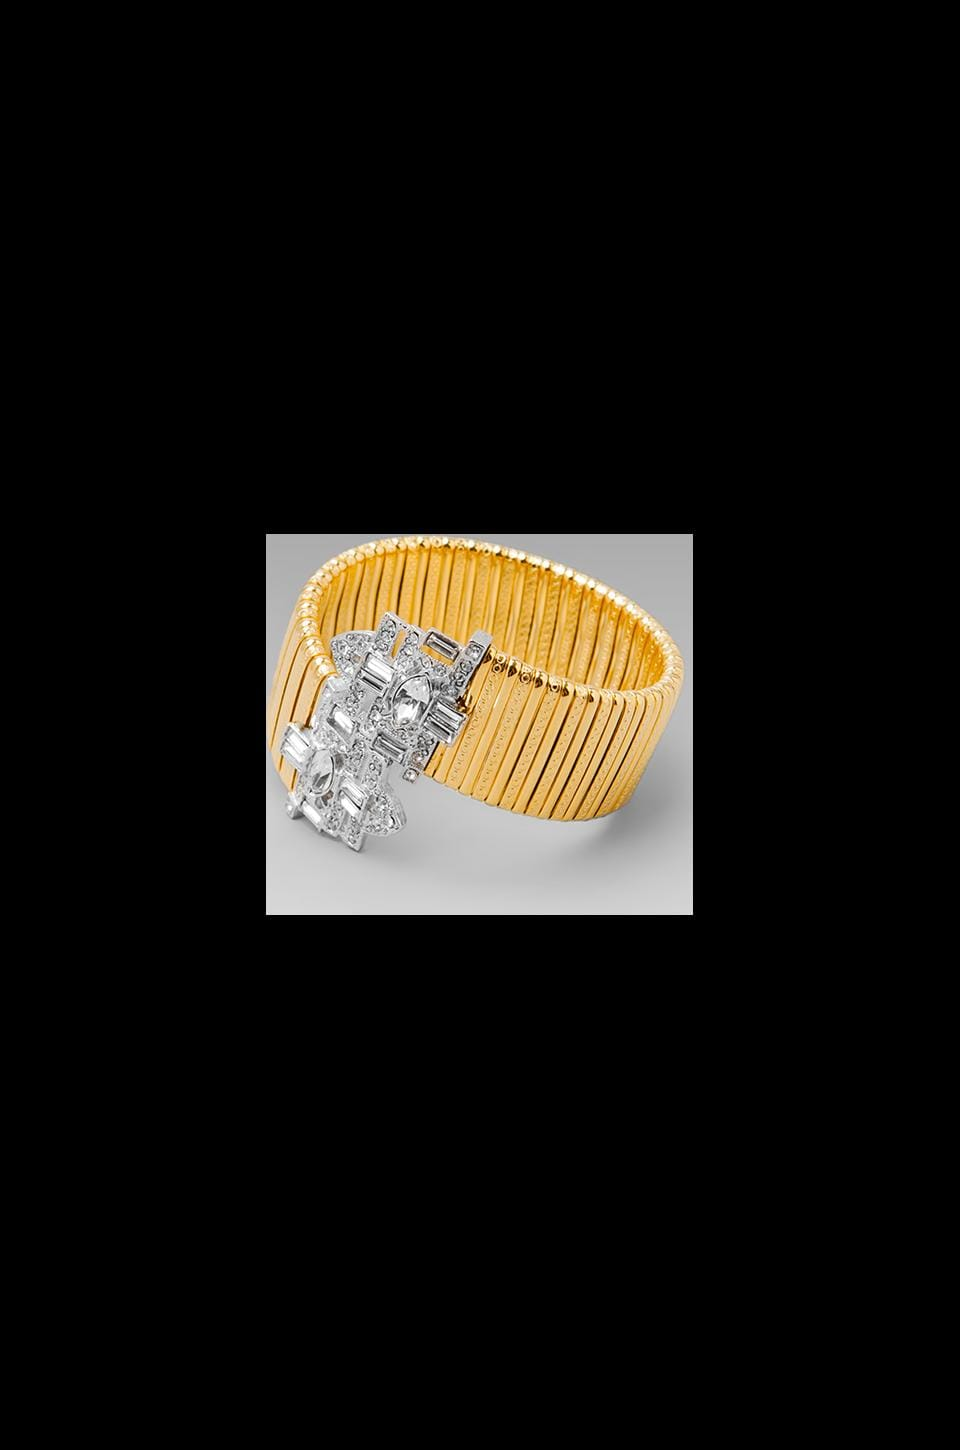 Kenneth Jay Lane Art Deco Coil Bracelet in Gold